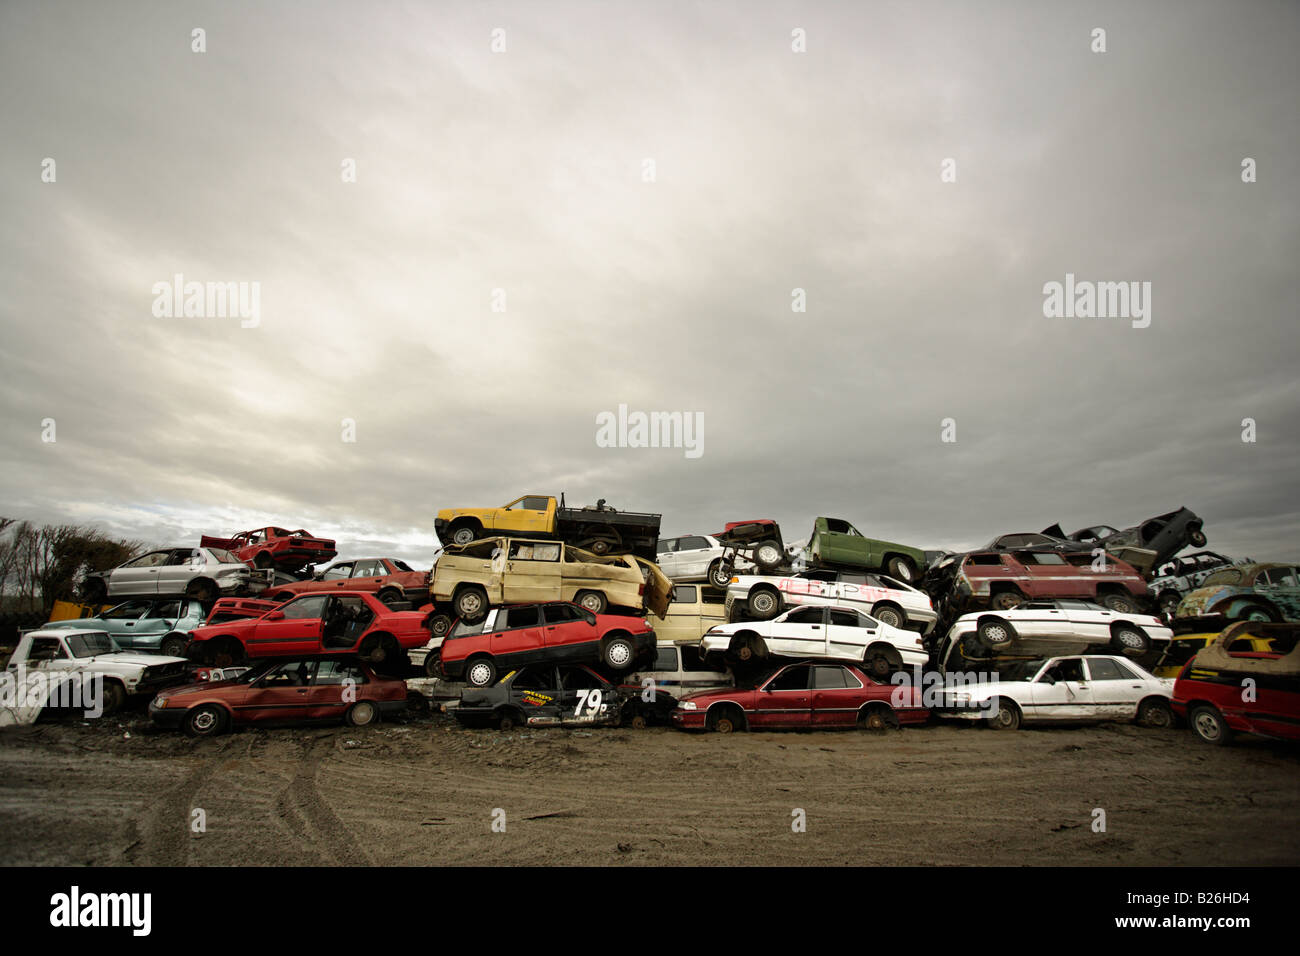 Car breakers yard New Zealand Cars stacked awaiting the crusher - Stock Image